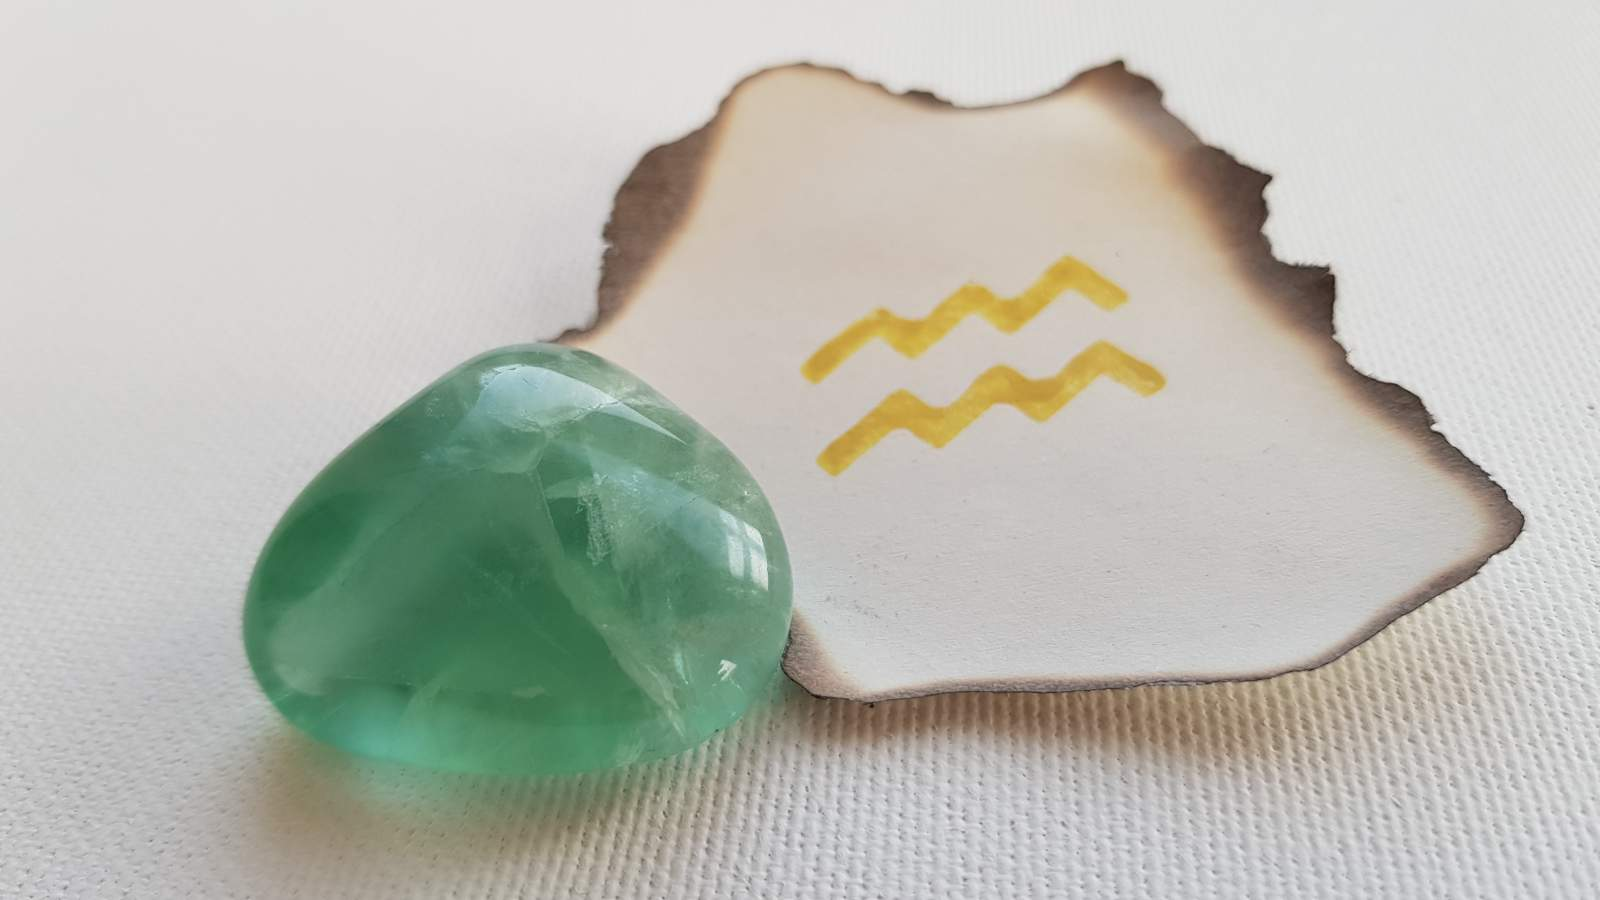 Gemstone - Aquarius 2019 Love Horoscope